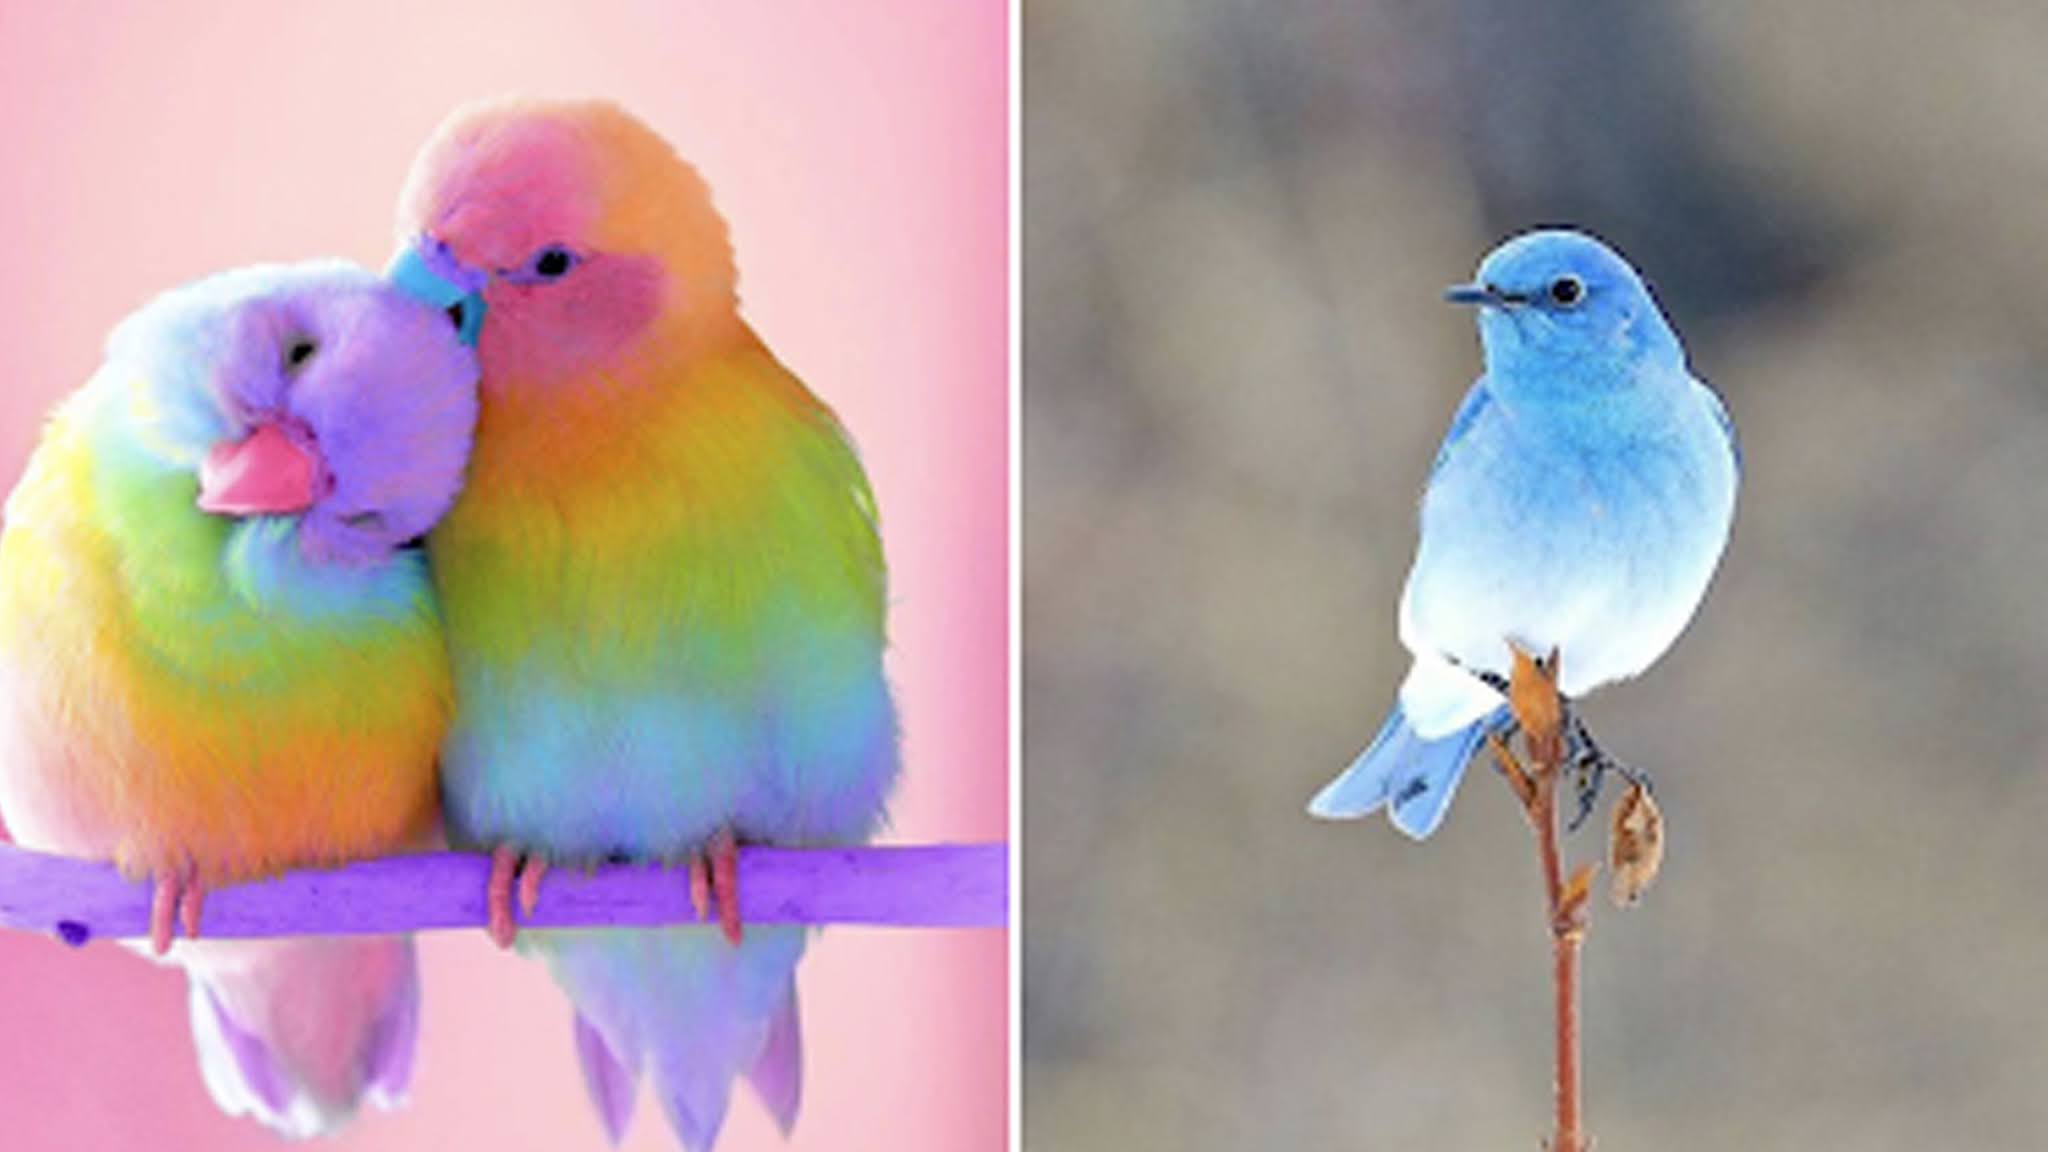 Would you like to see the most beautiful and glorious birds in the world?